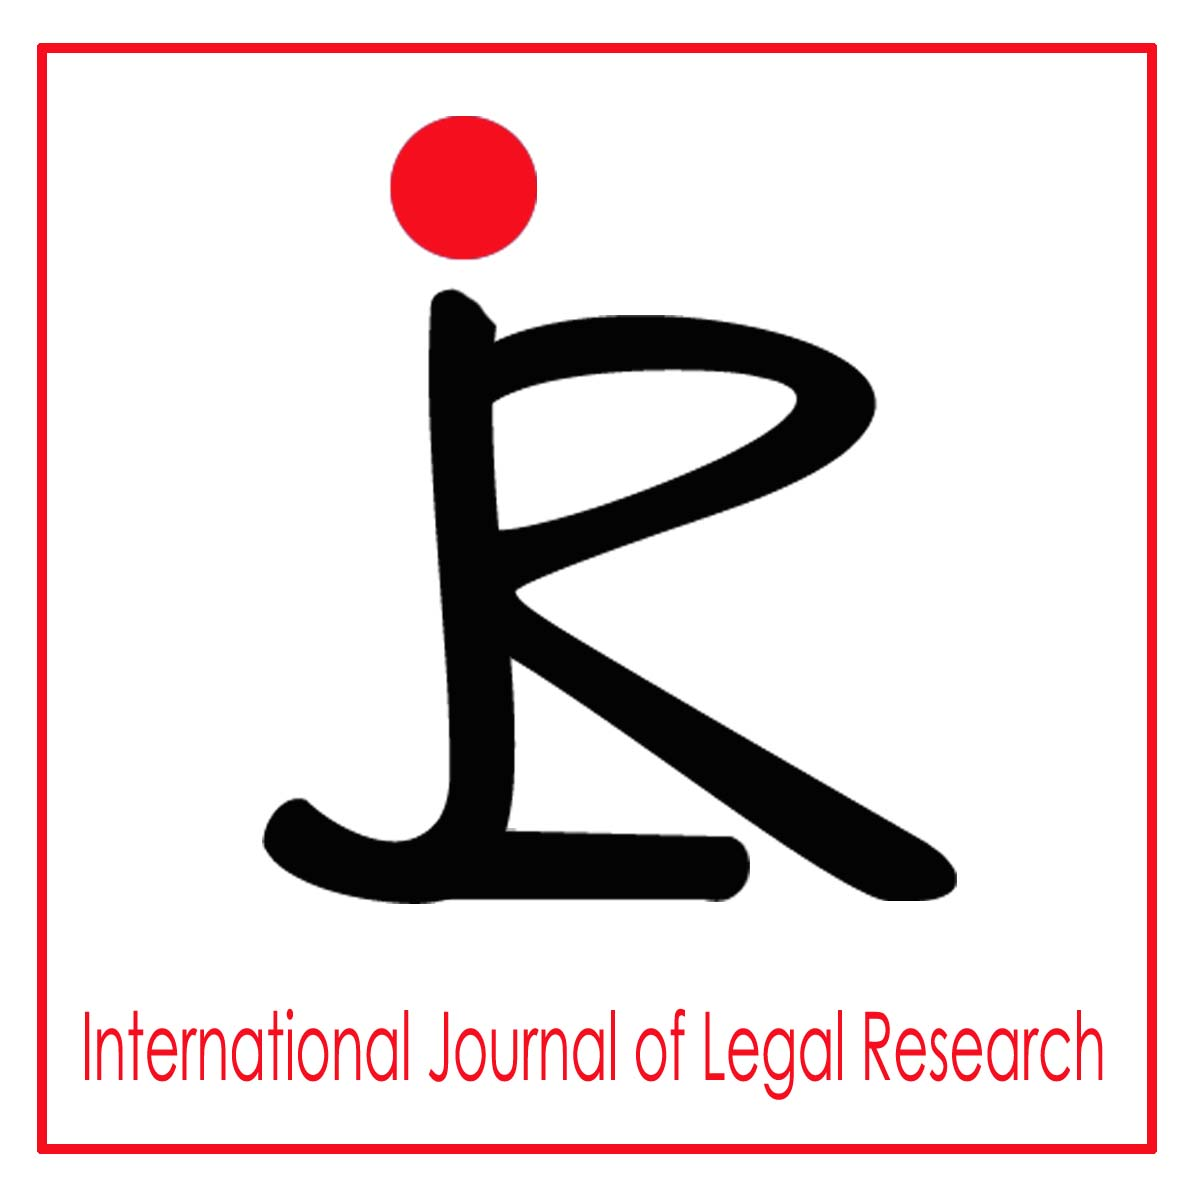 Call for Papers: International Journal of Legal Research